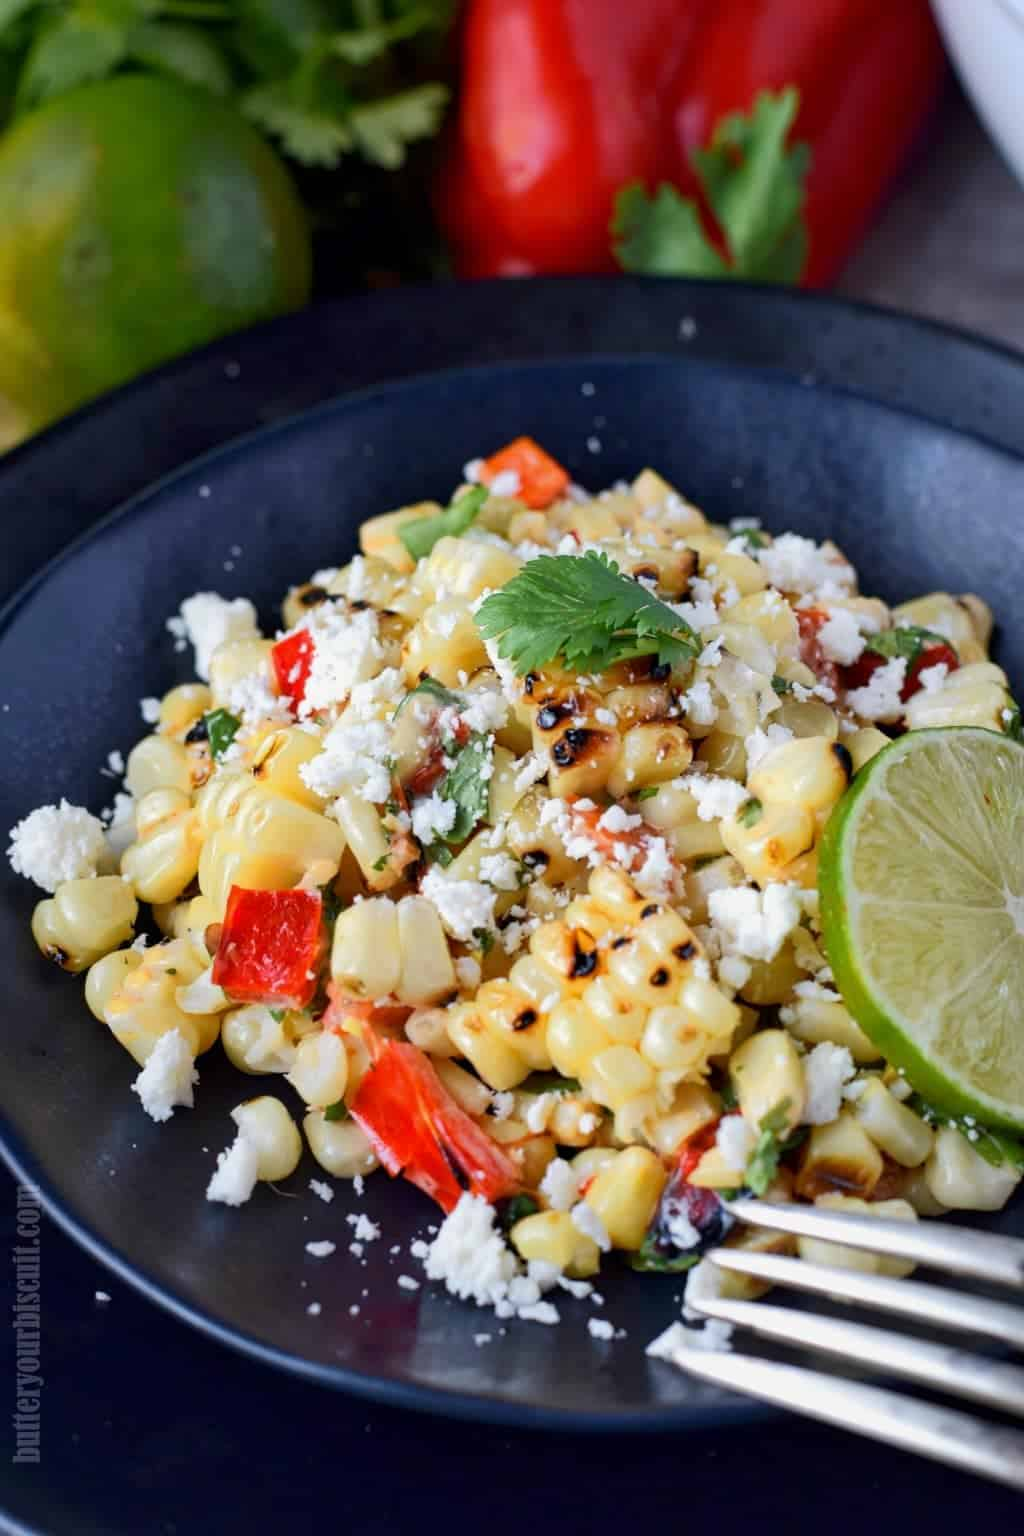 Grilled mexican corn salad on a black plate with limes slices.